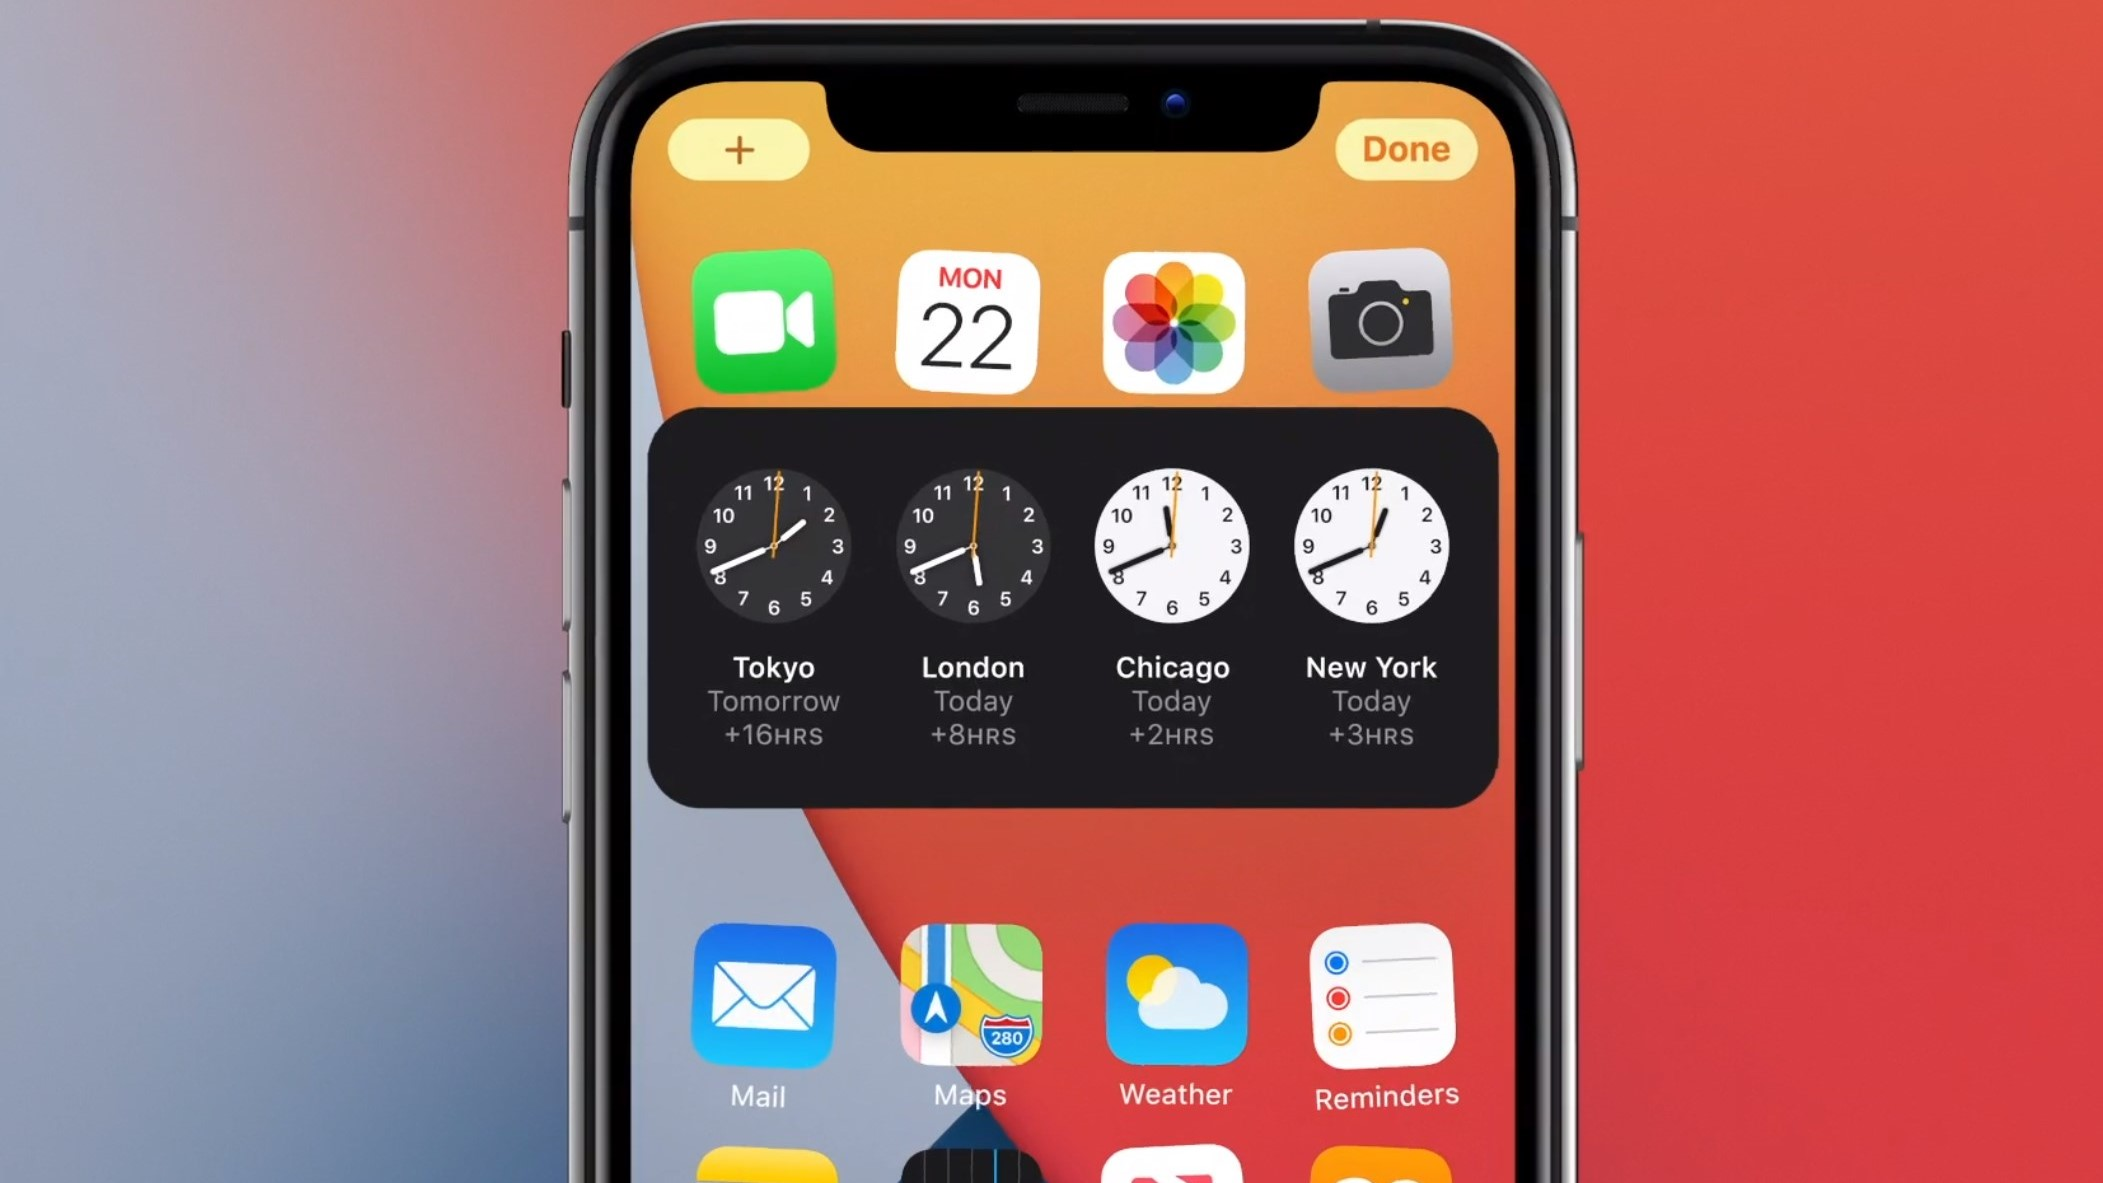 Apple Announces Ios 14 With Widgets Pip Threads And More Thurrott Com